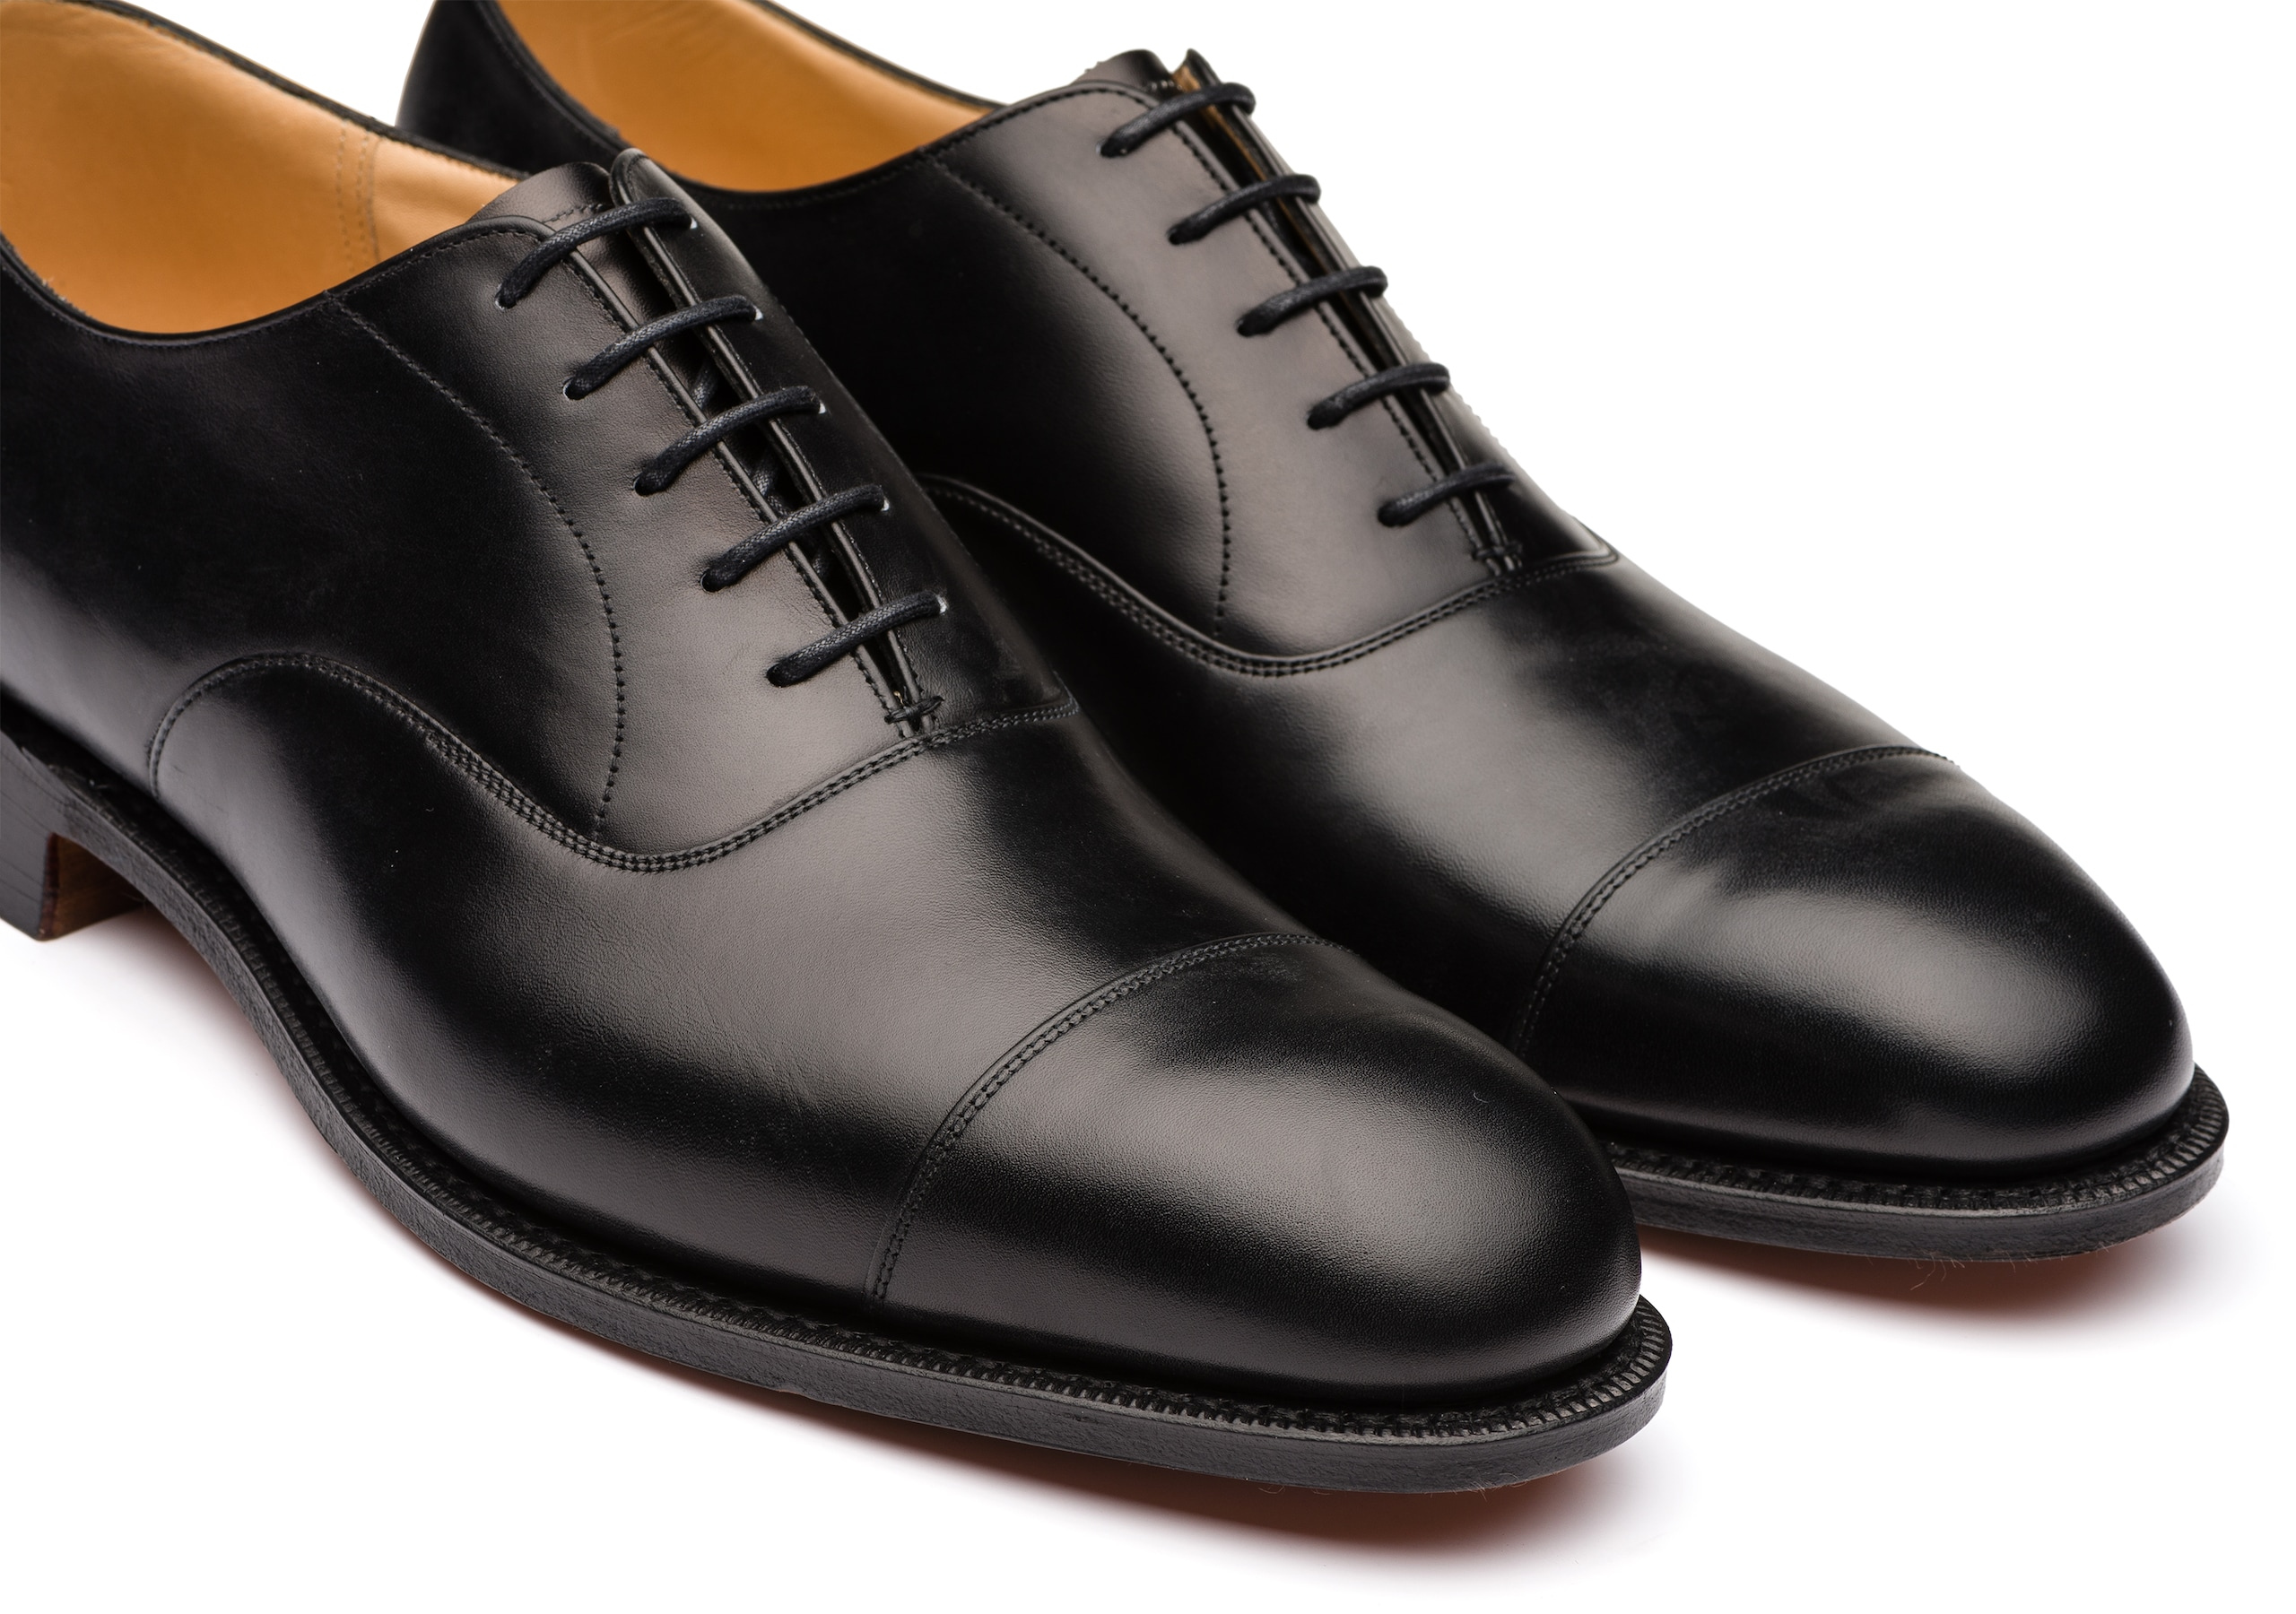 Consul Church's Oxford in Pelle di Vitello Nero